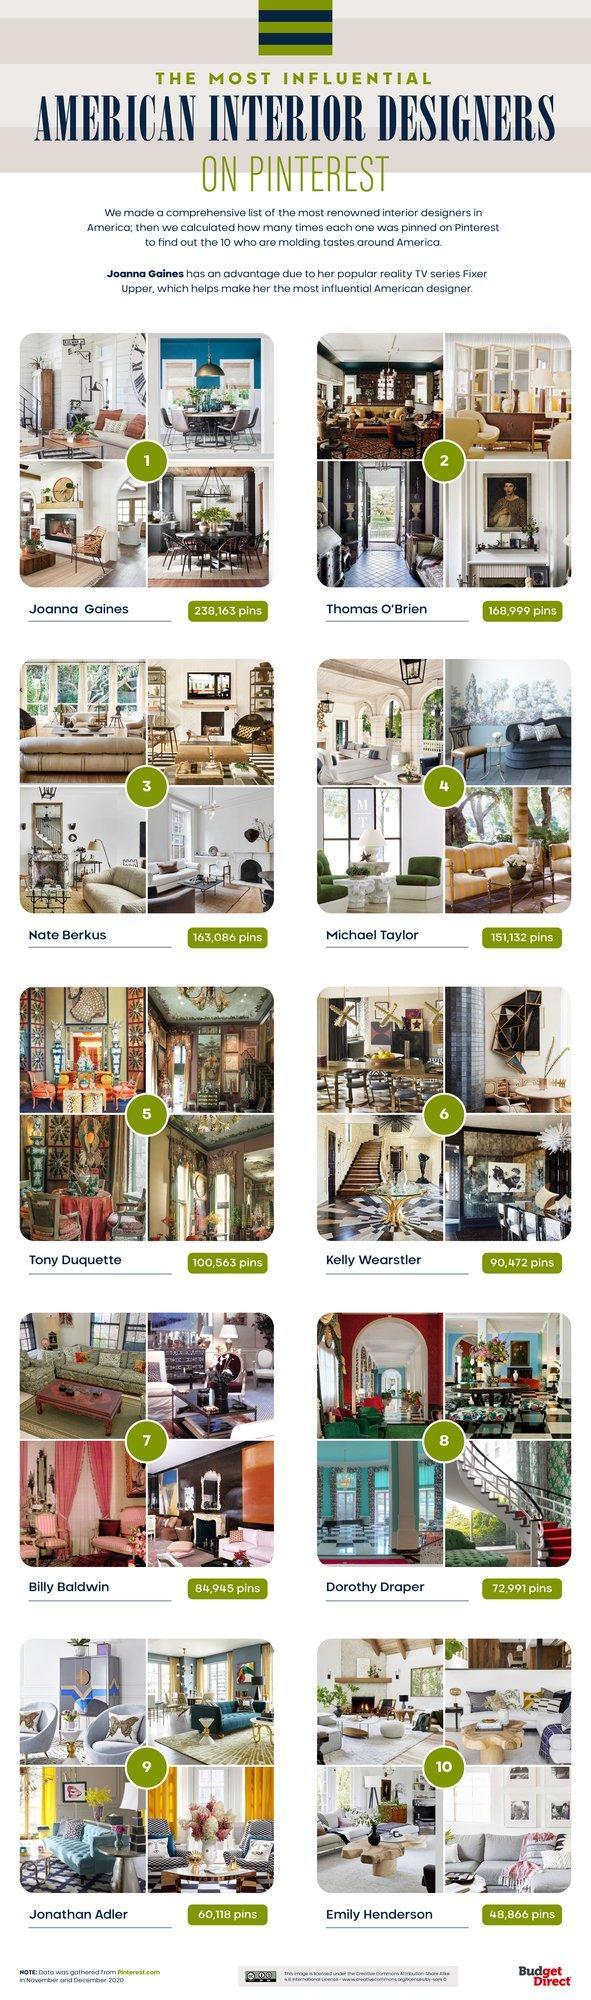 Budget Direct Home Insurance's Most Influential American Interior Designers on Pinterest